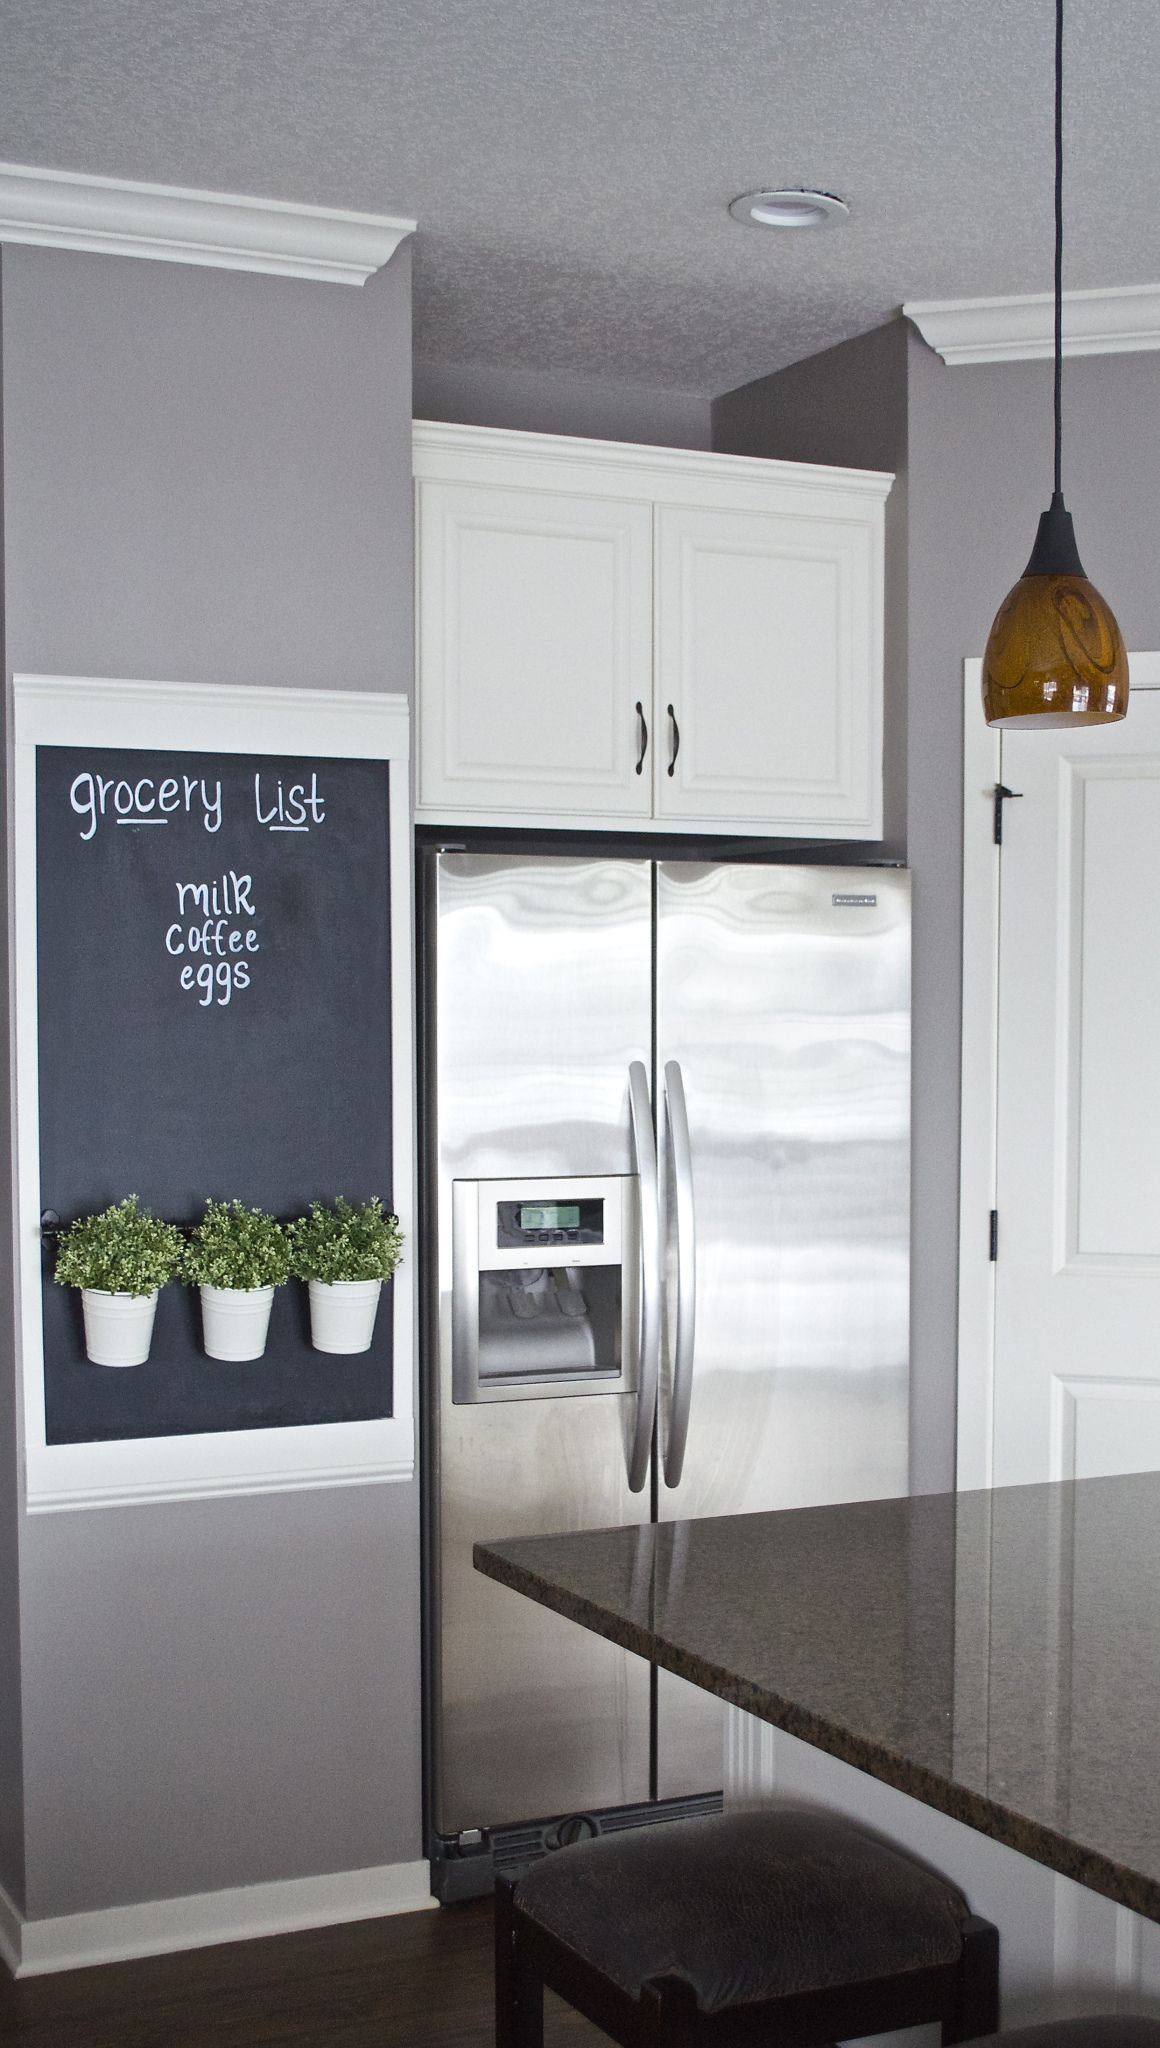 Kitchen Chalkboard Wall The Hatched Home Chalkboard Wall Kitchen Home Decor Kitchen Decor